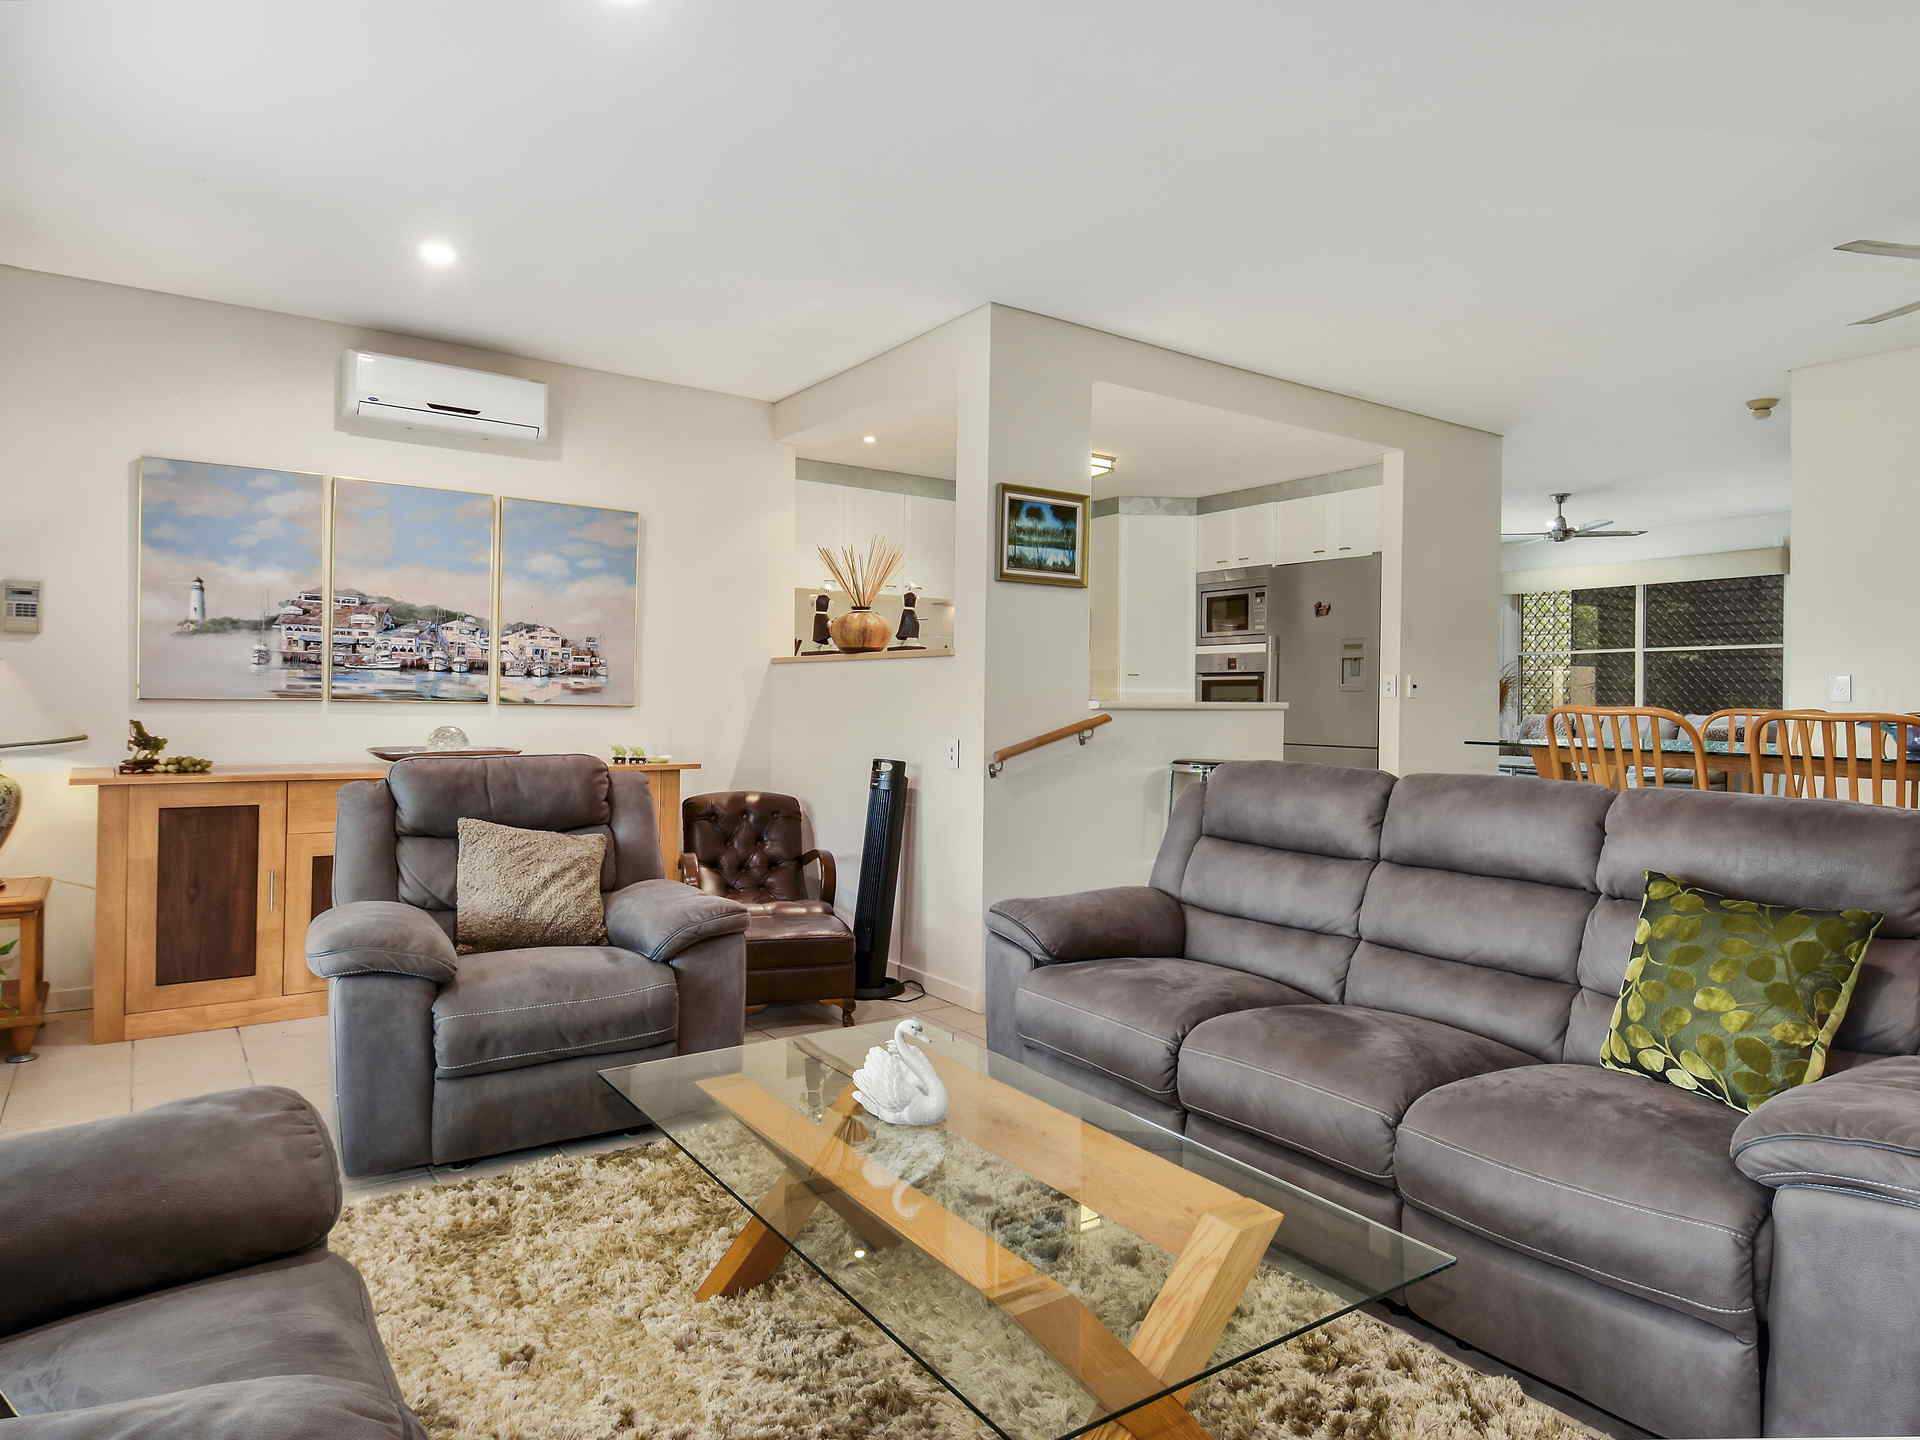 Real Estate   Gold Coast   Chevron Realty   012 Open2view Id494894 2120 Ross Street Royal Pines Benowa